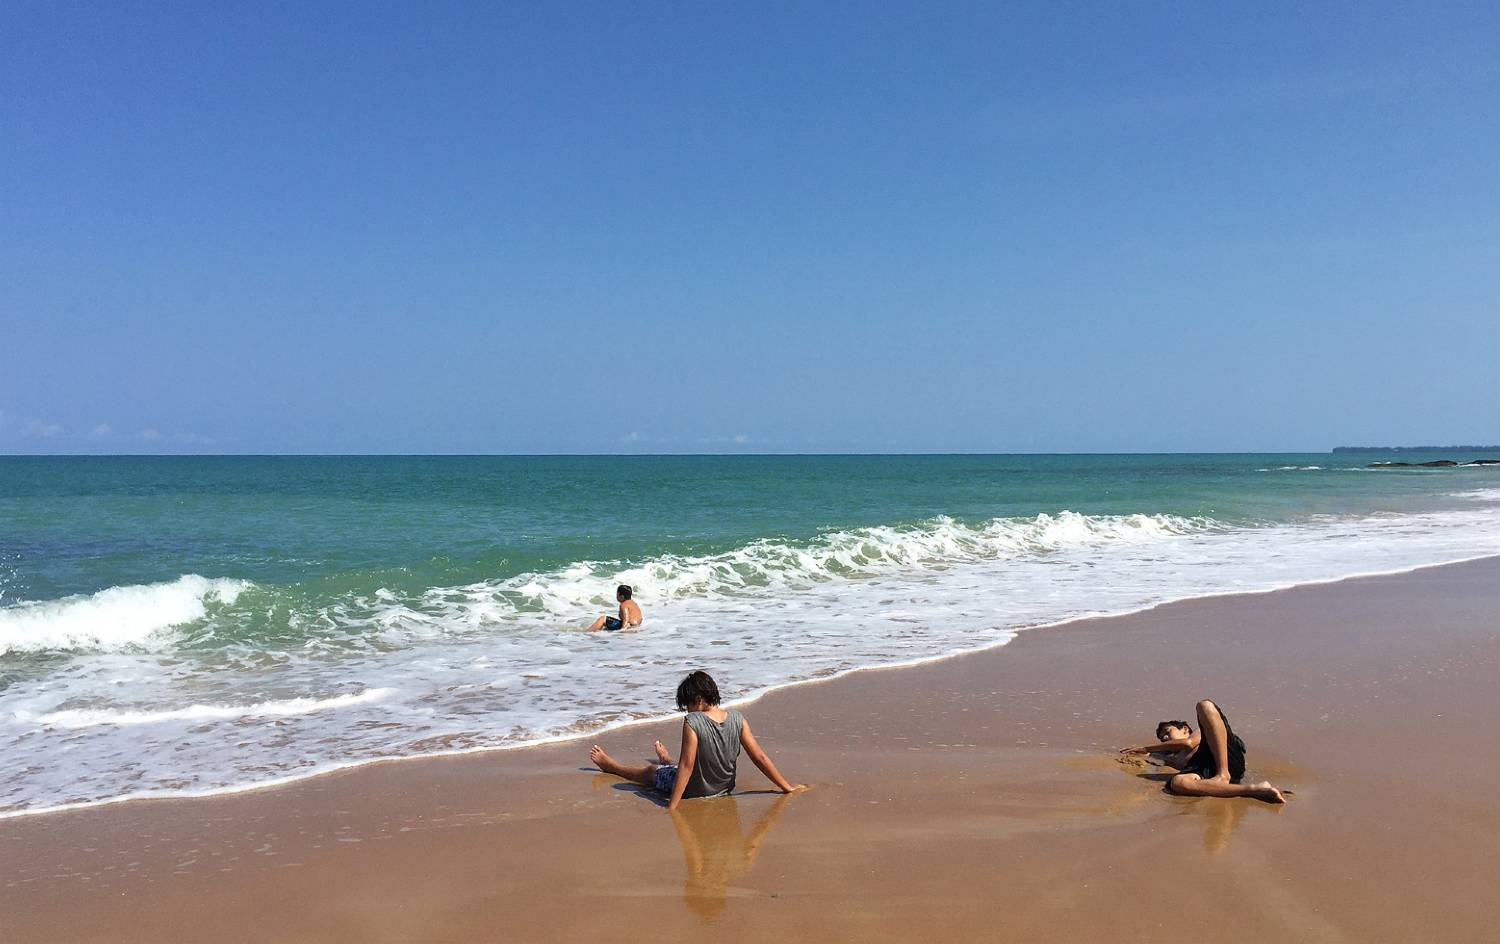 golden yellow beach, Nang Thong Beach with children playing in the sand and waves